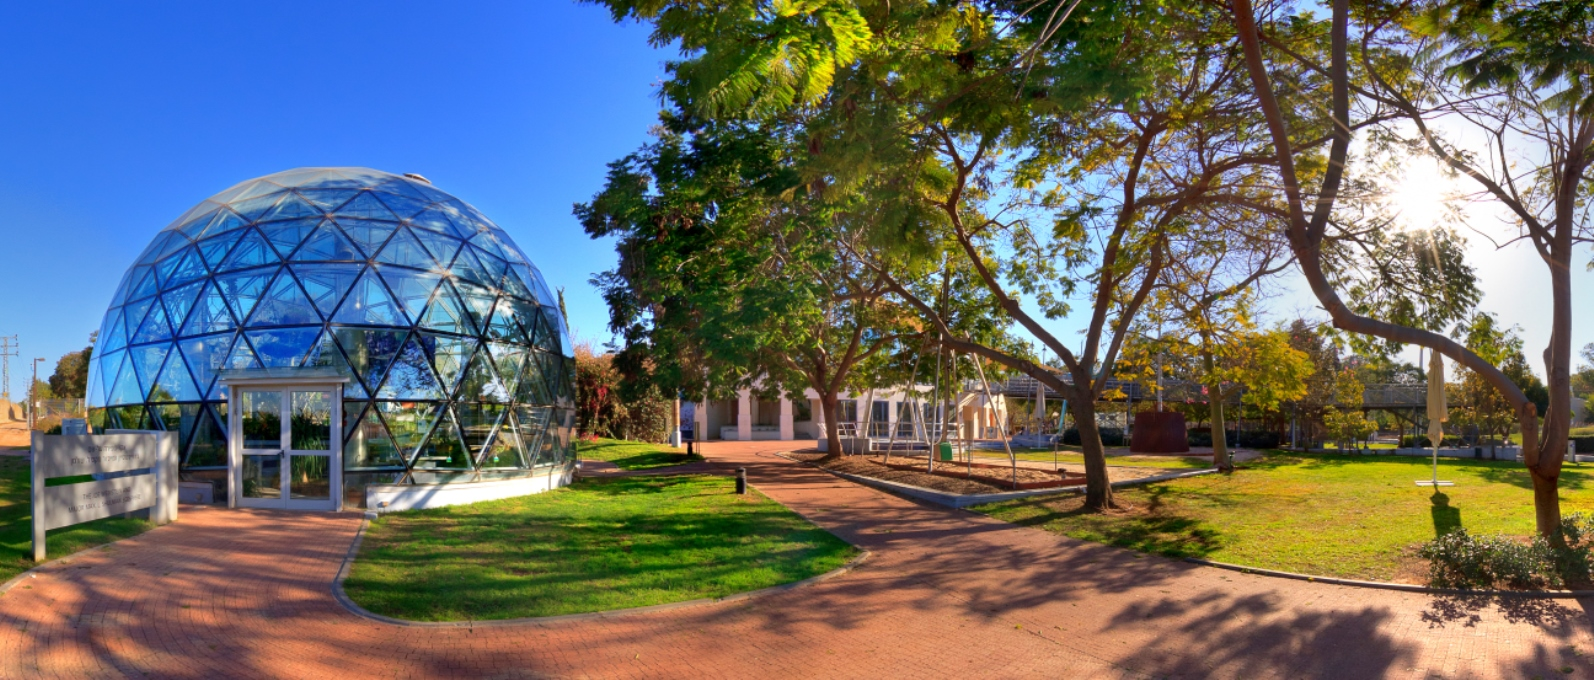 Clore Garden of Science. Photo: courtesy